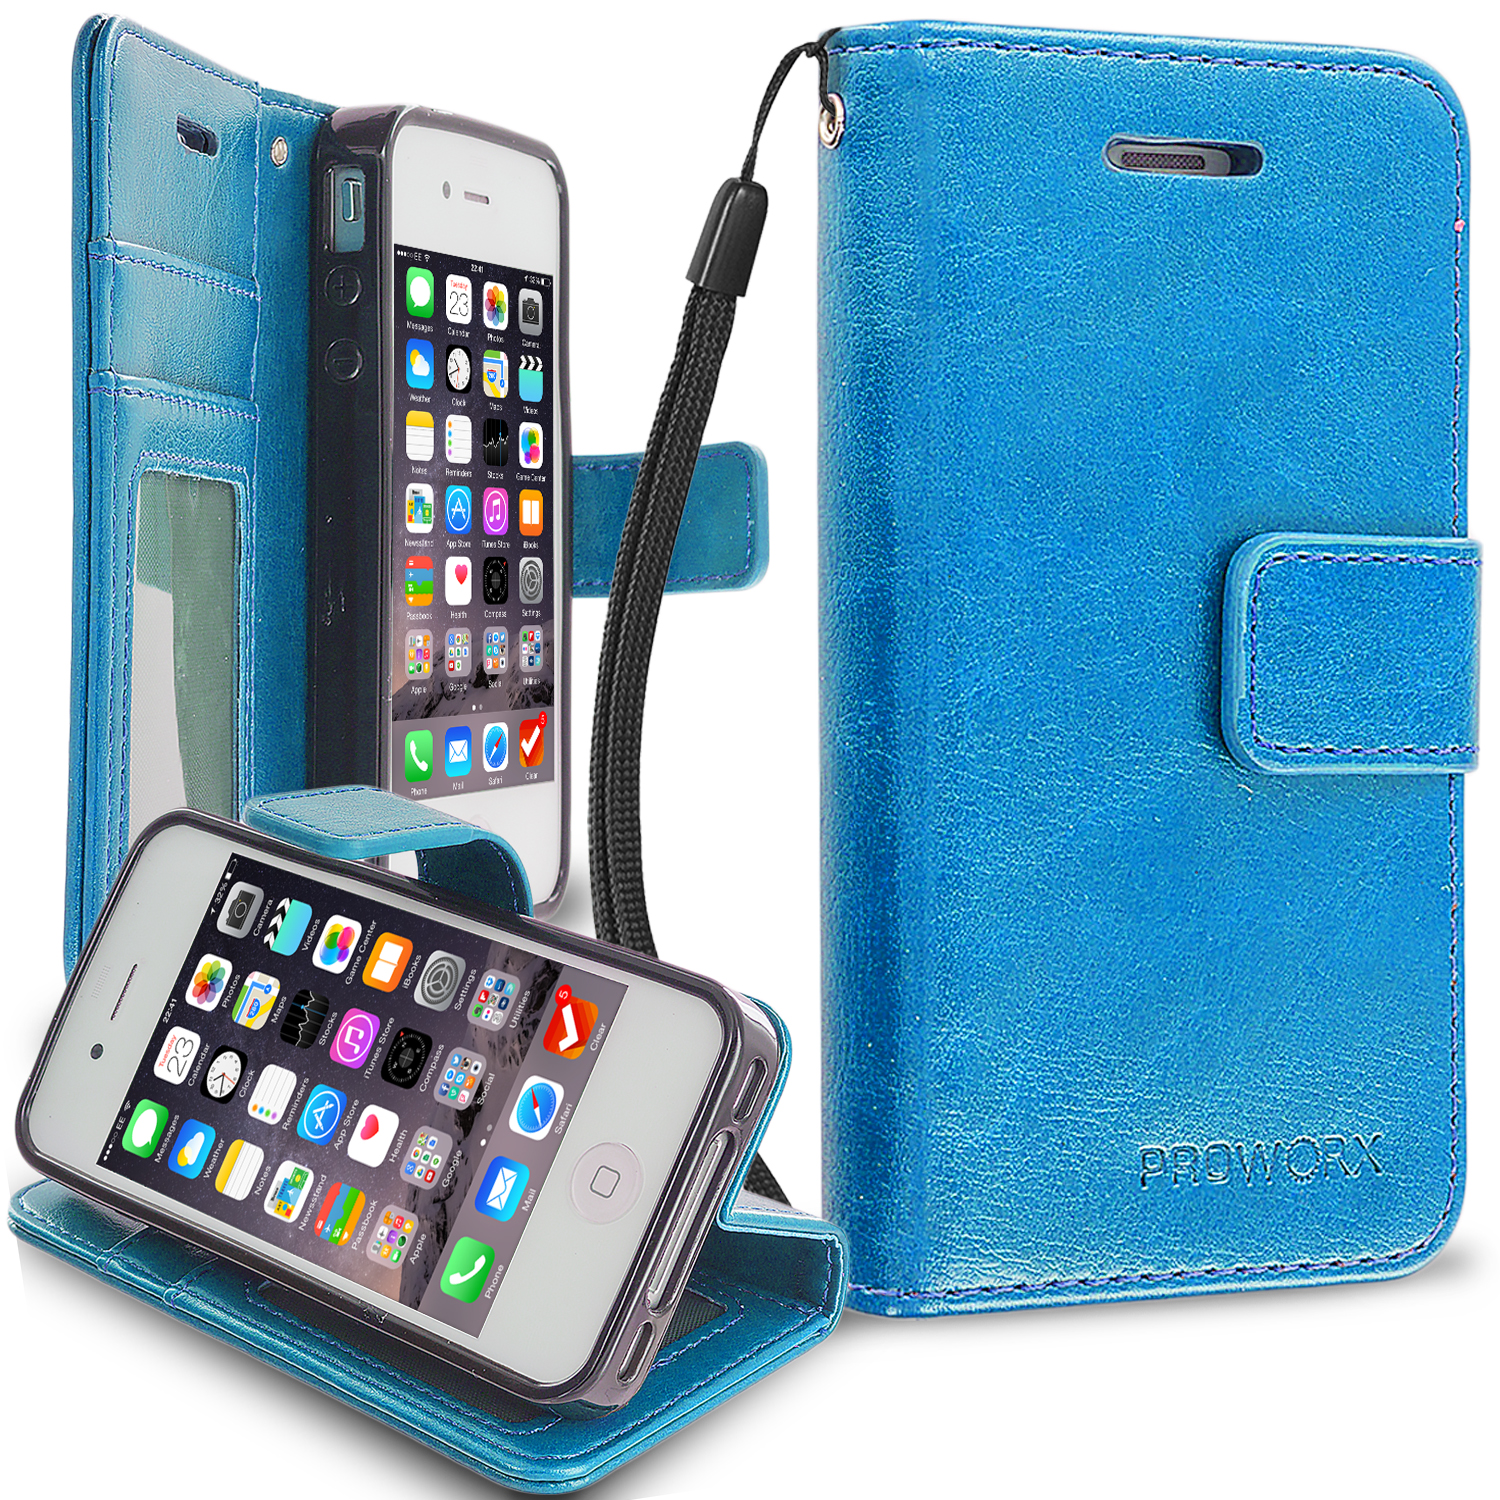 Apple iPhone 4 / 4S Baby Blue ProWorx Wallet Case Luxury PU Leather Case Cover With Card Slots & Stand